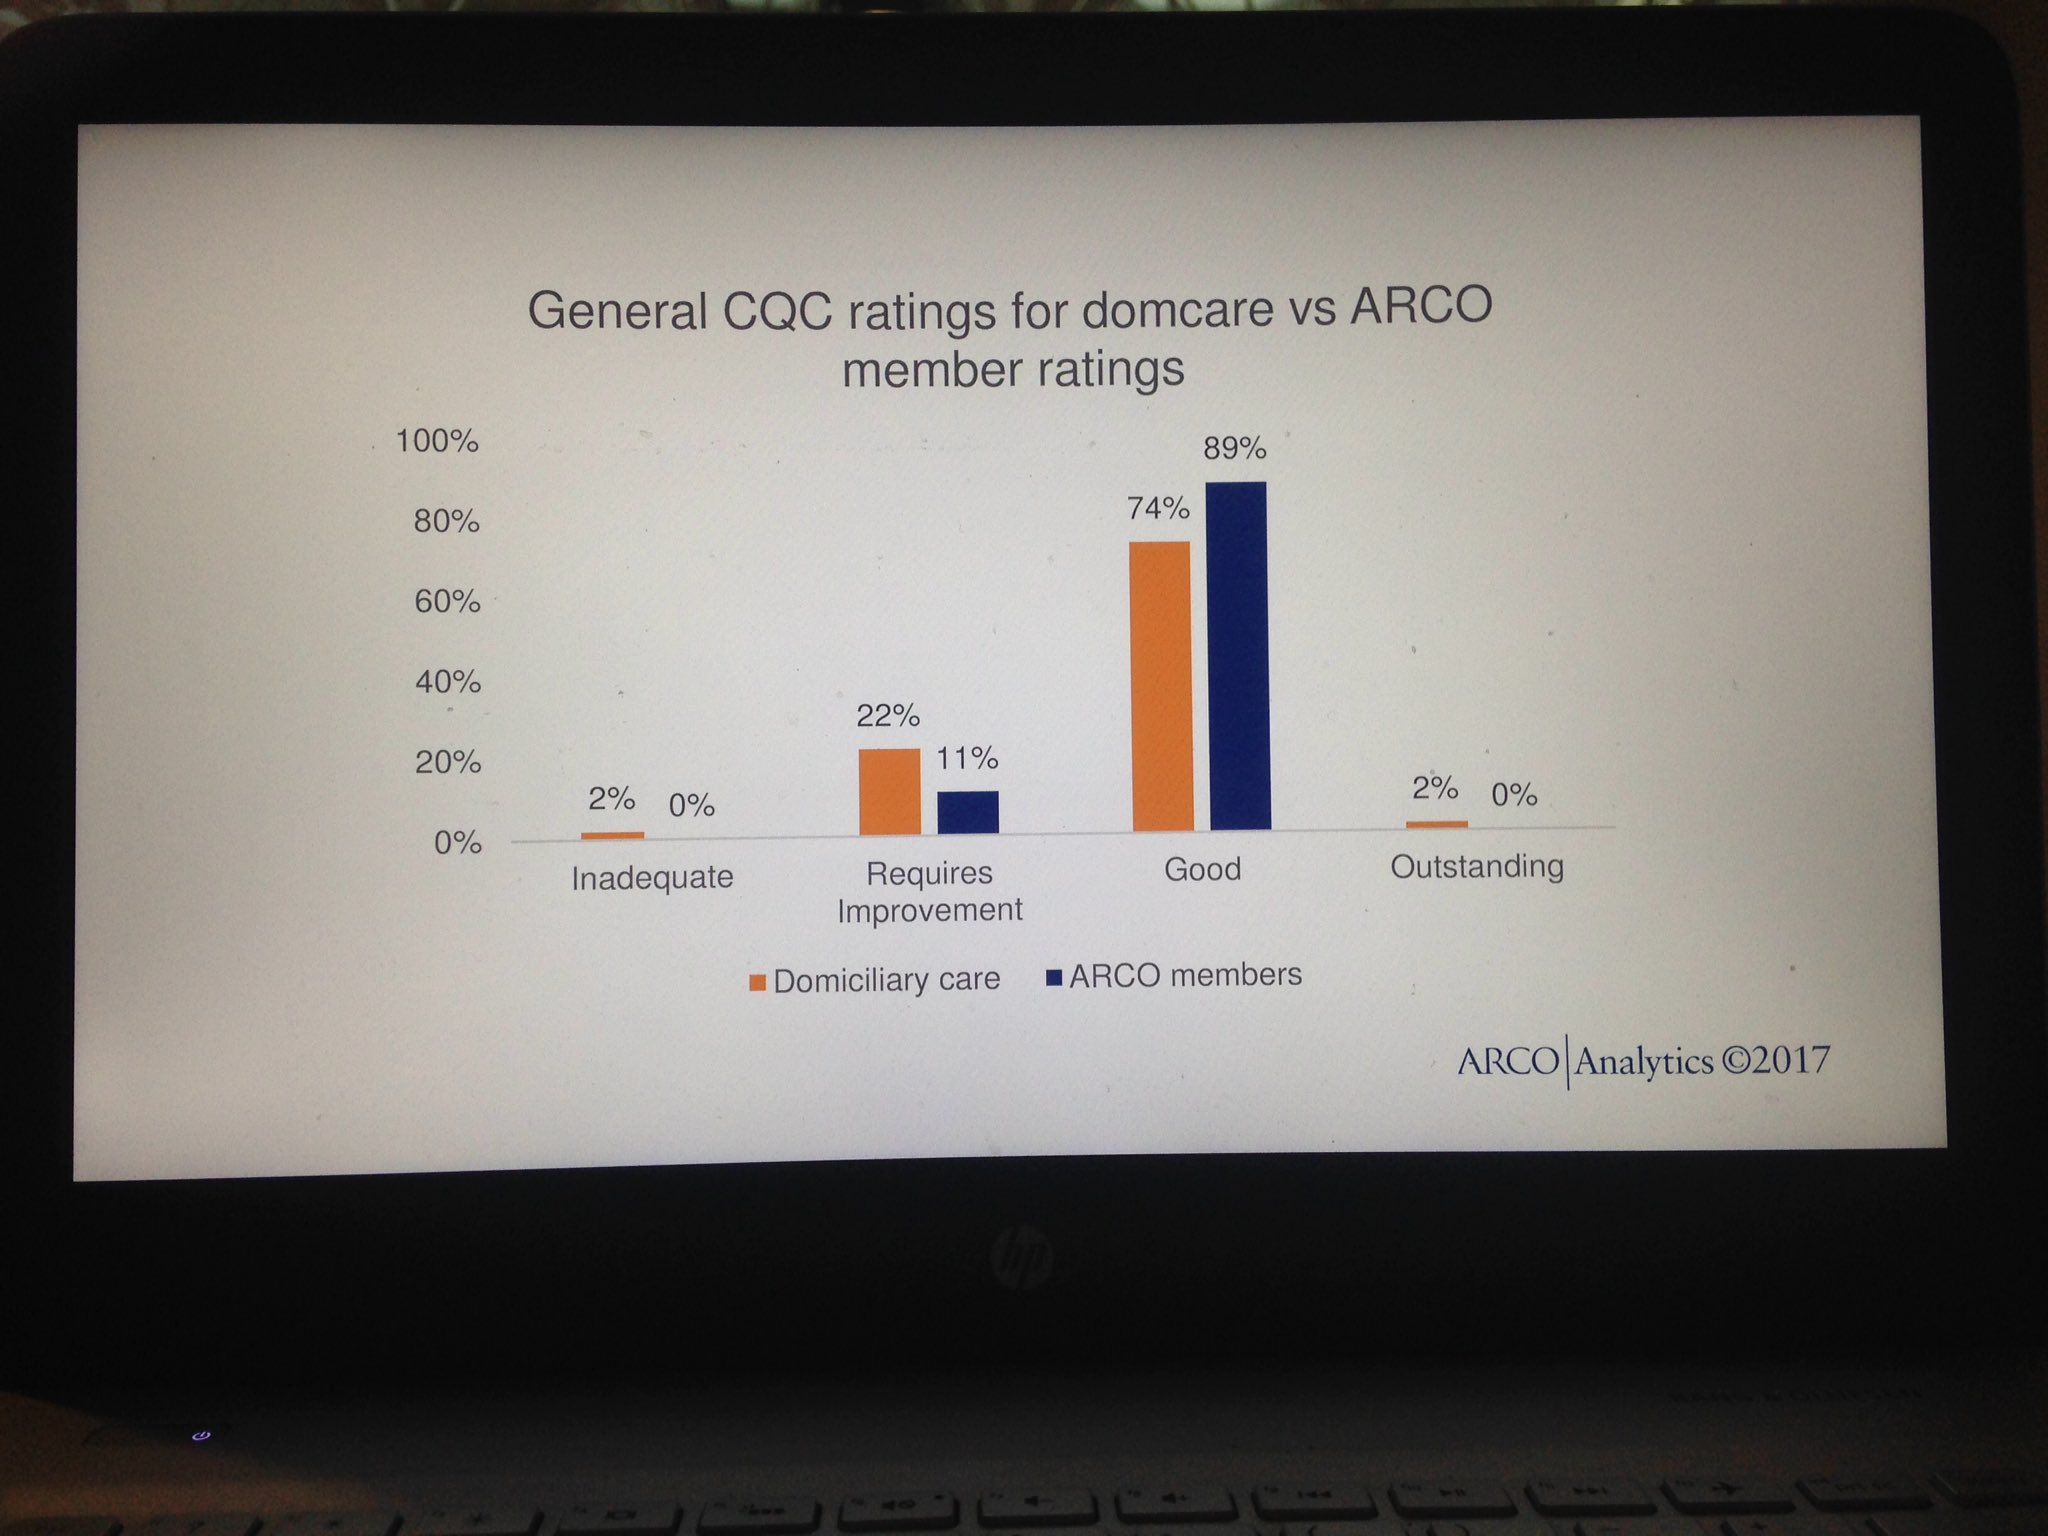 Preliminary research from @ARCOtweets - more care Good & less Requires Improvement in ARCO #retirementcommunities than norm #ARCOwhatnext https://t.co/YrkSayA9Xz